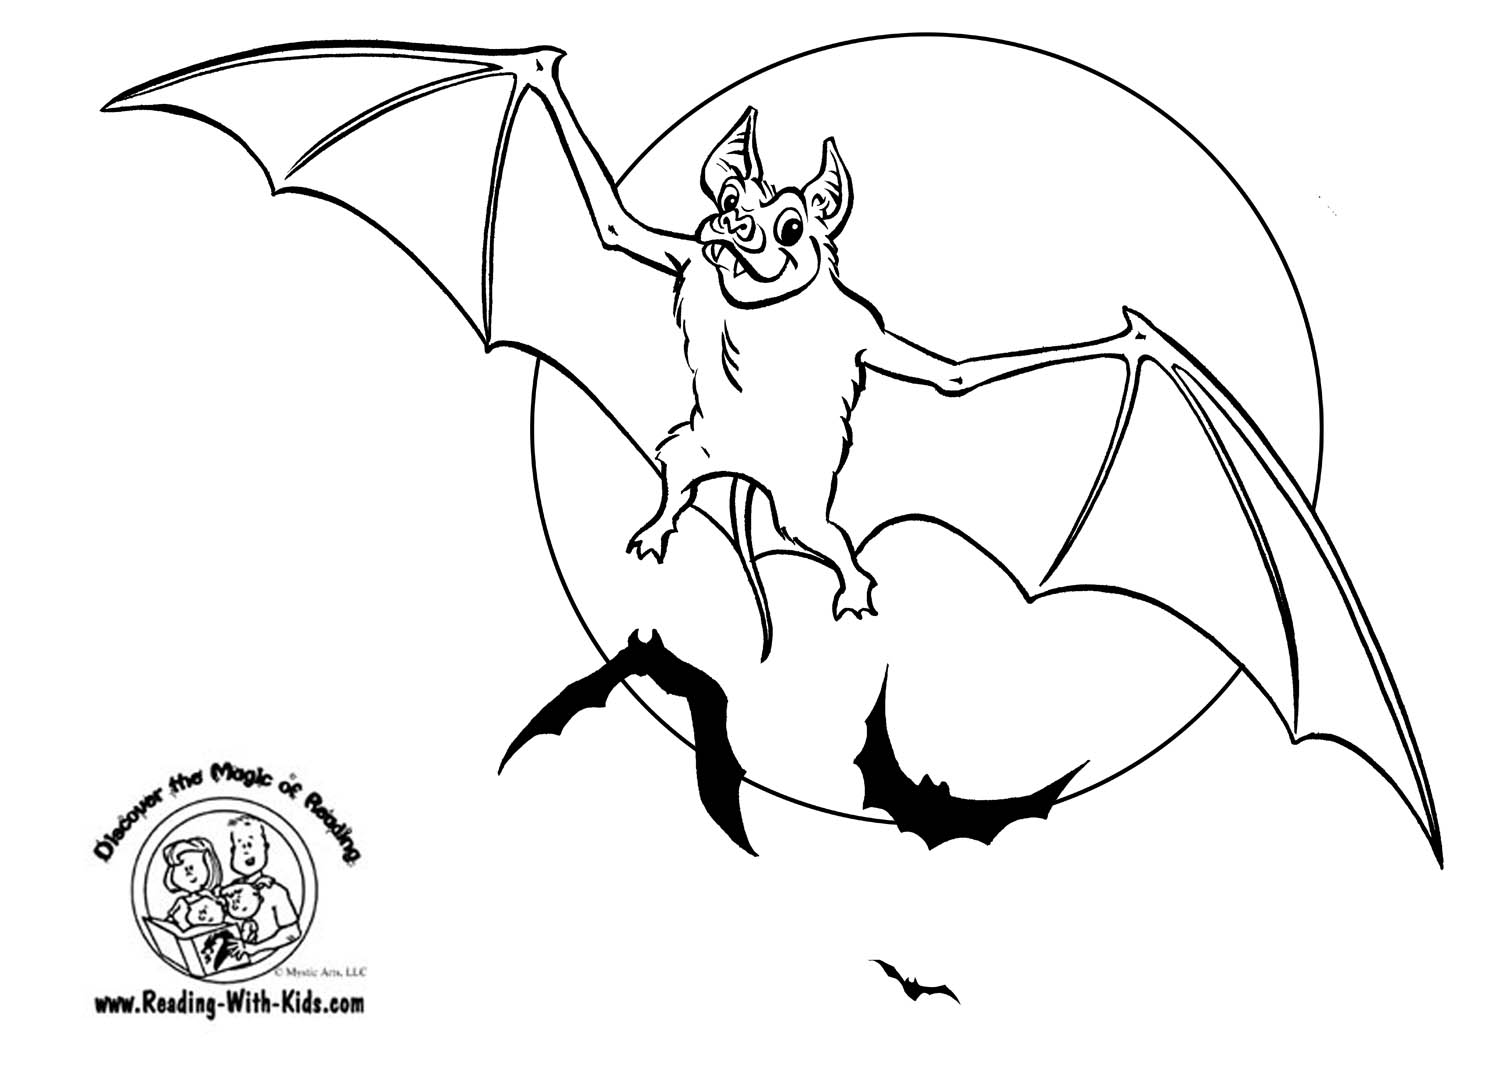 Free-coloring-pages.com halloween